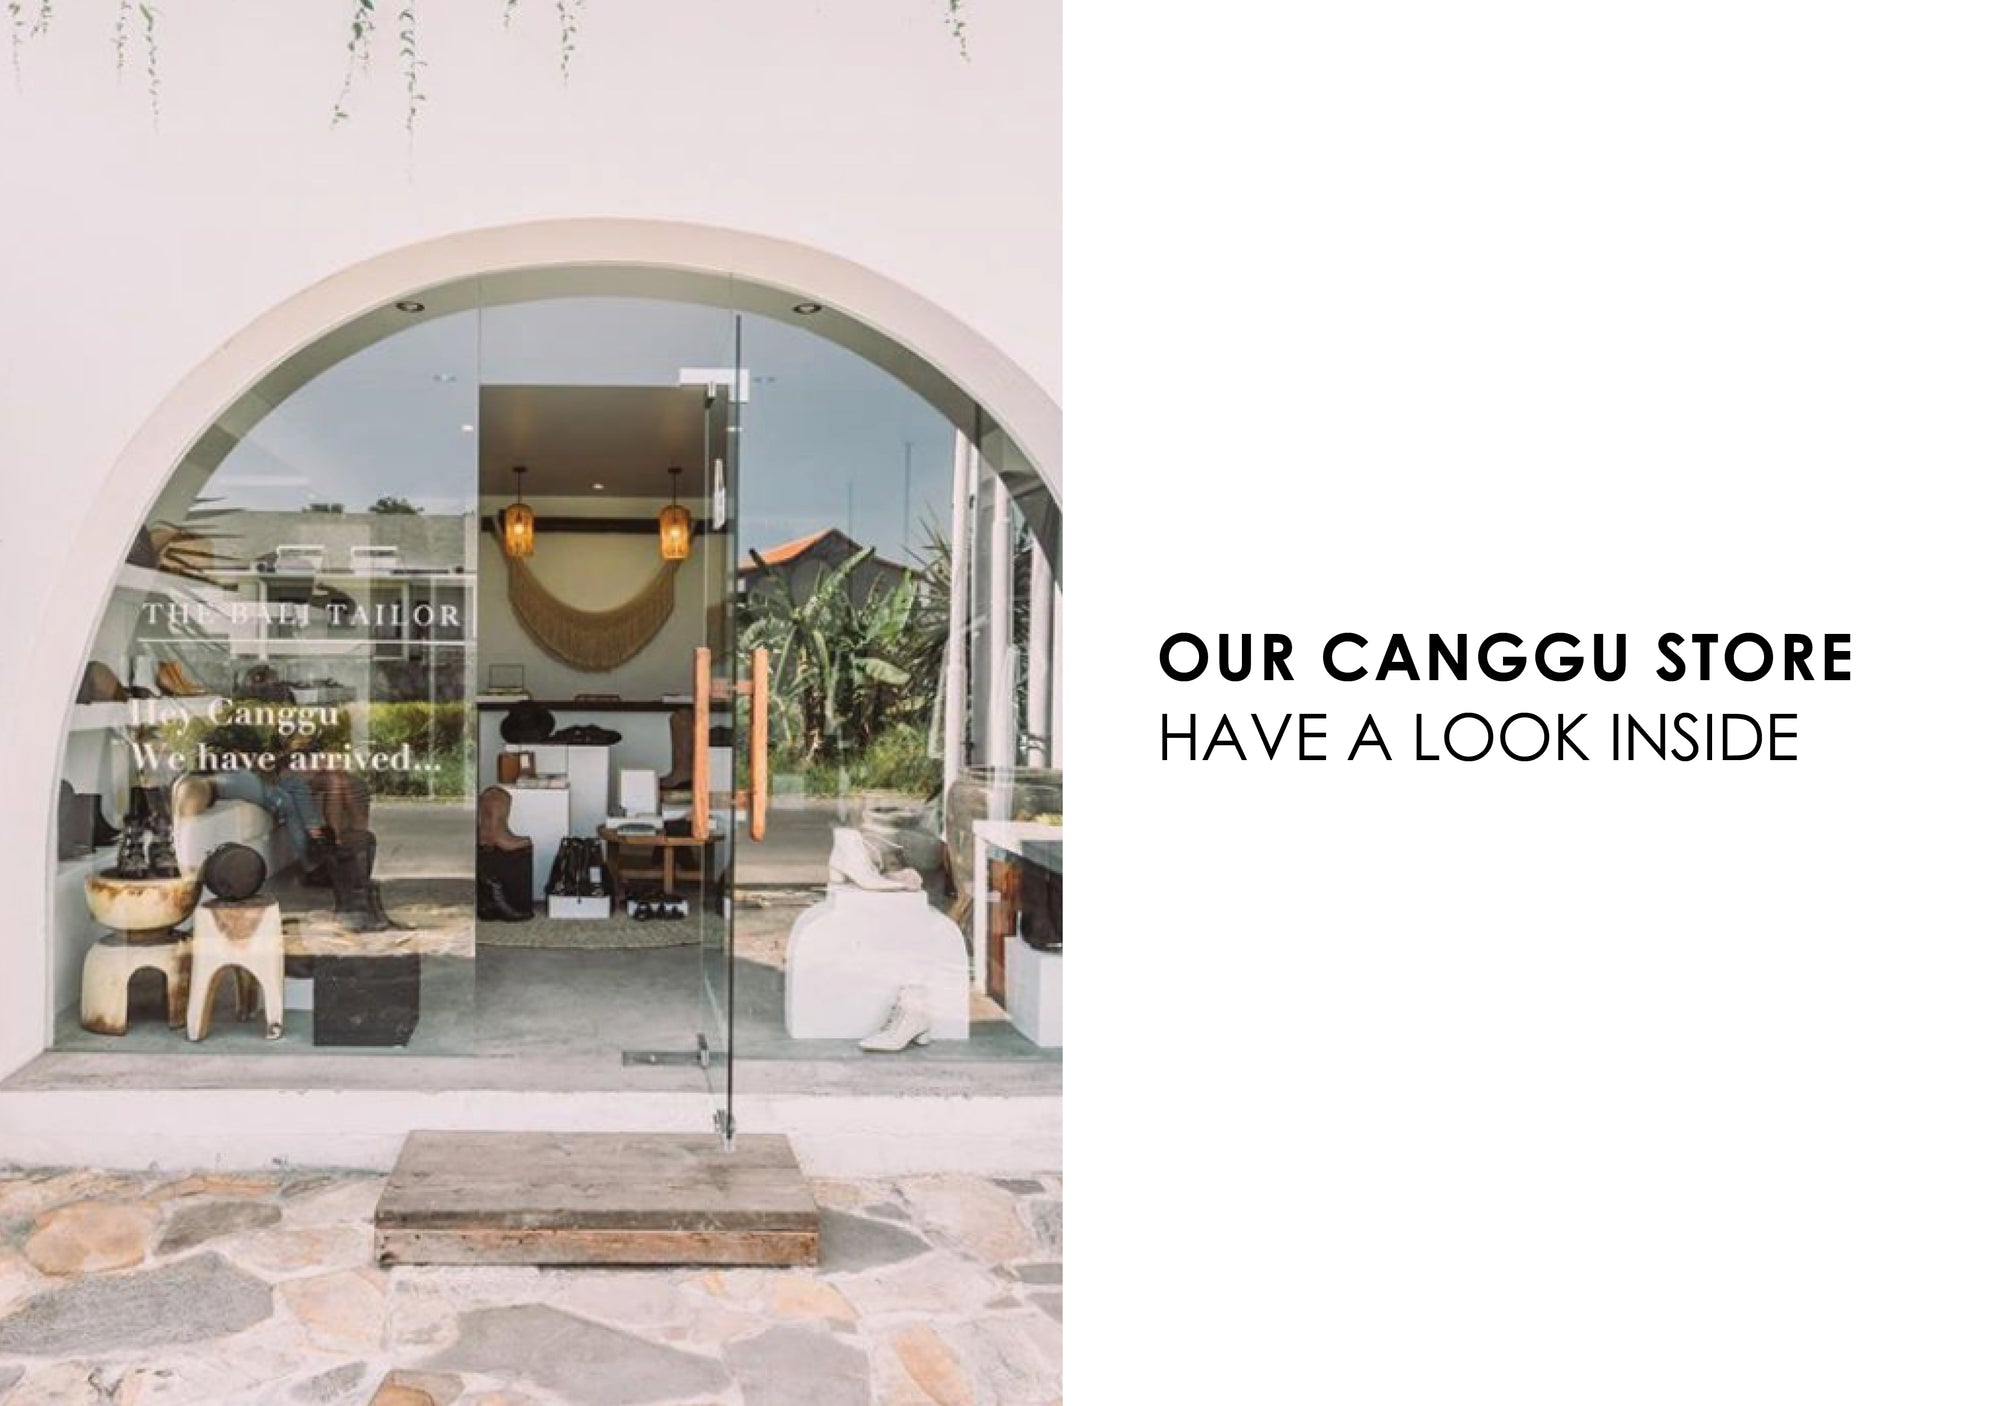 INTRODUCING OUR NEW STORE | CANGGU WE HAVE ARRIVED